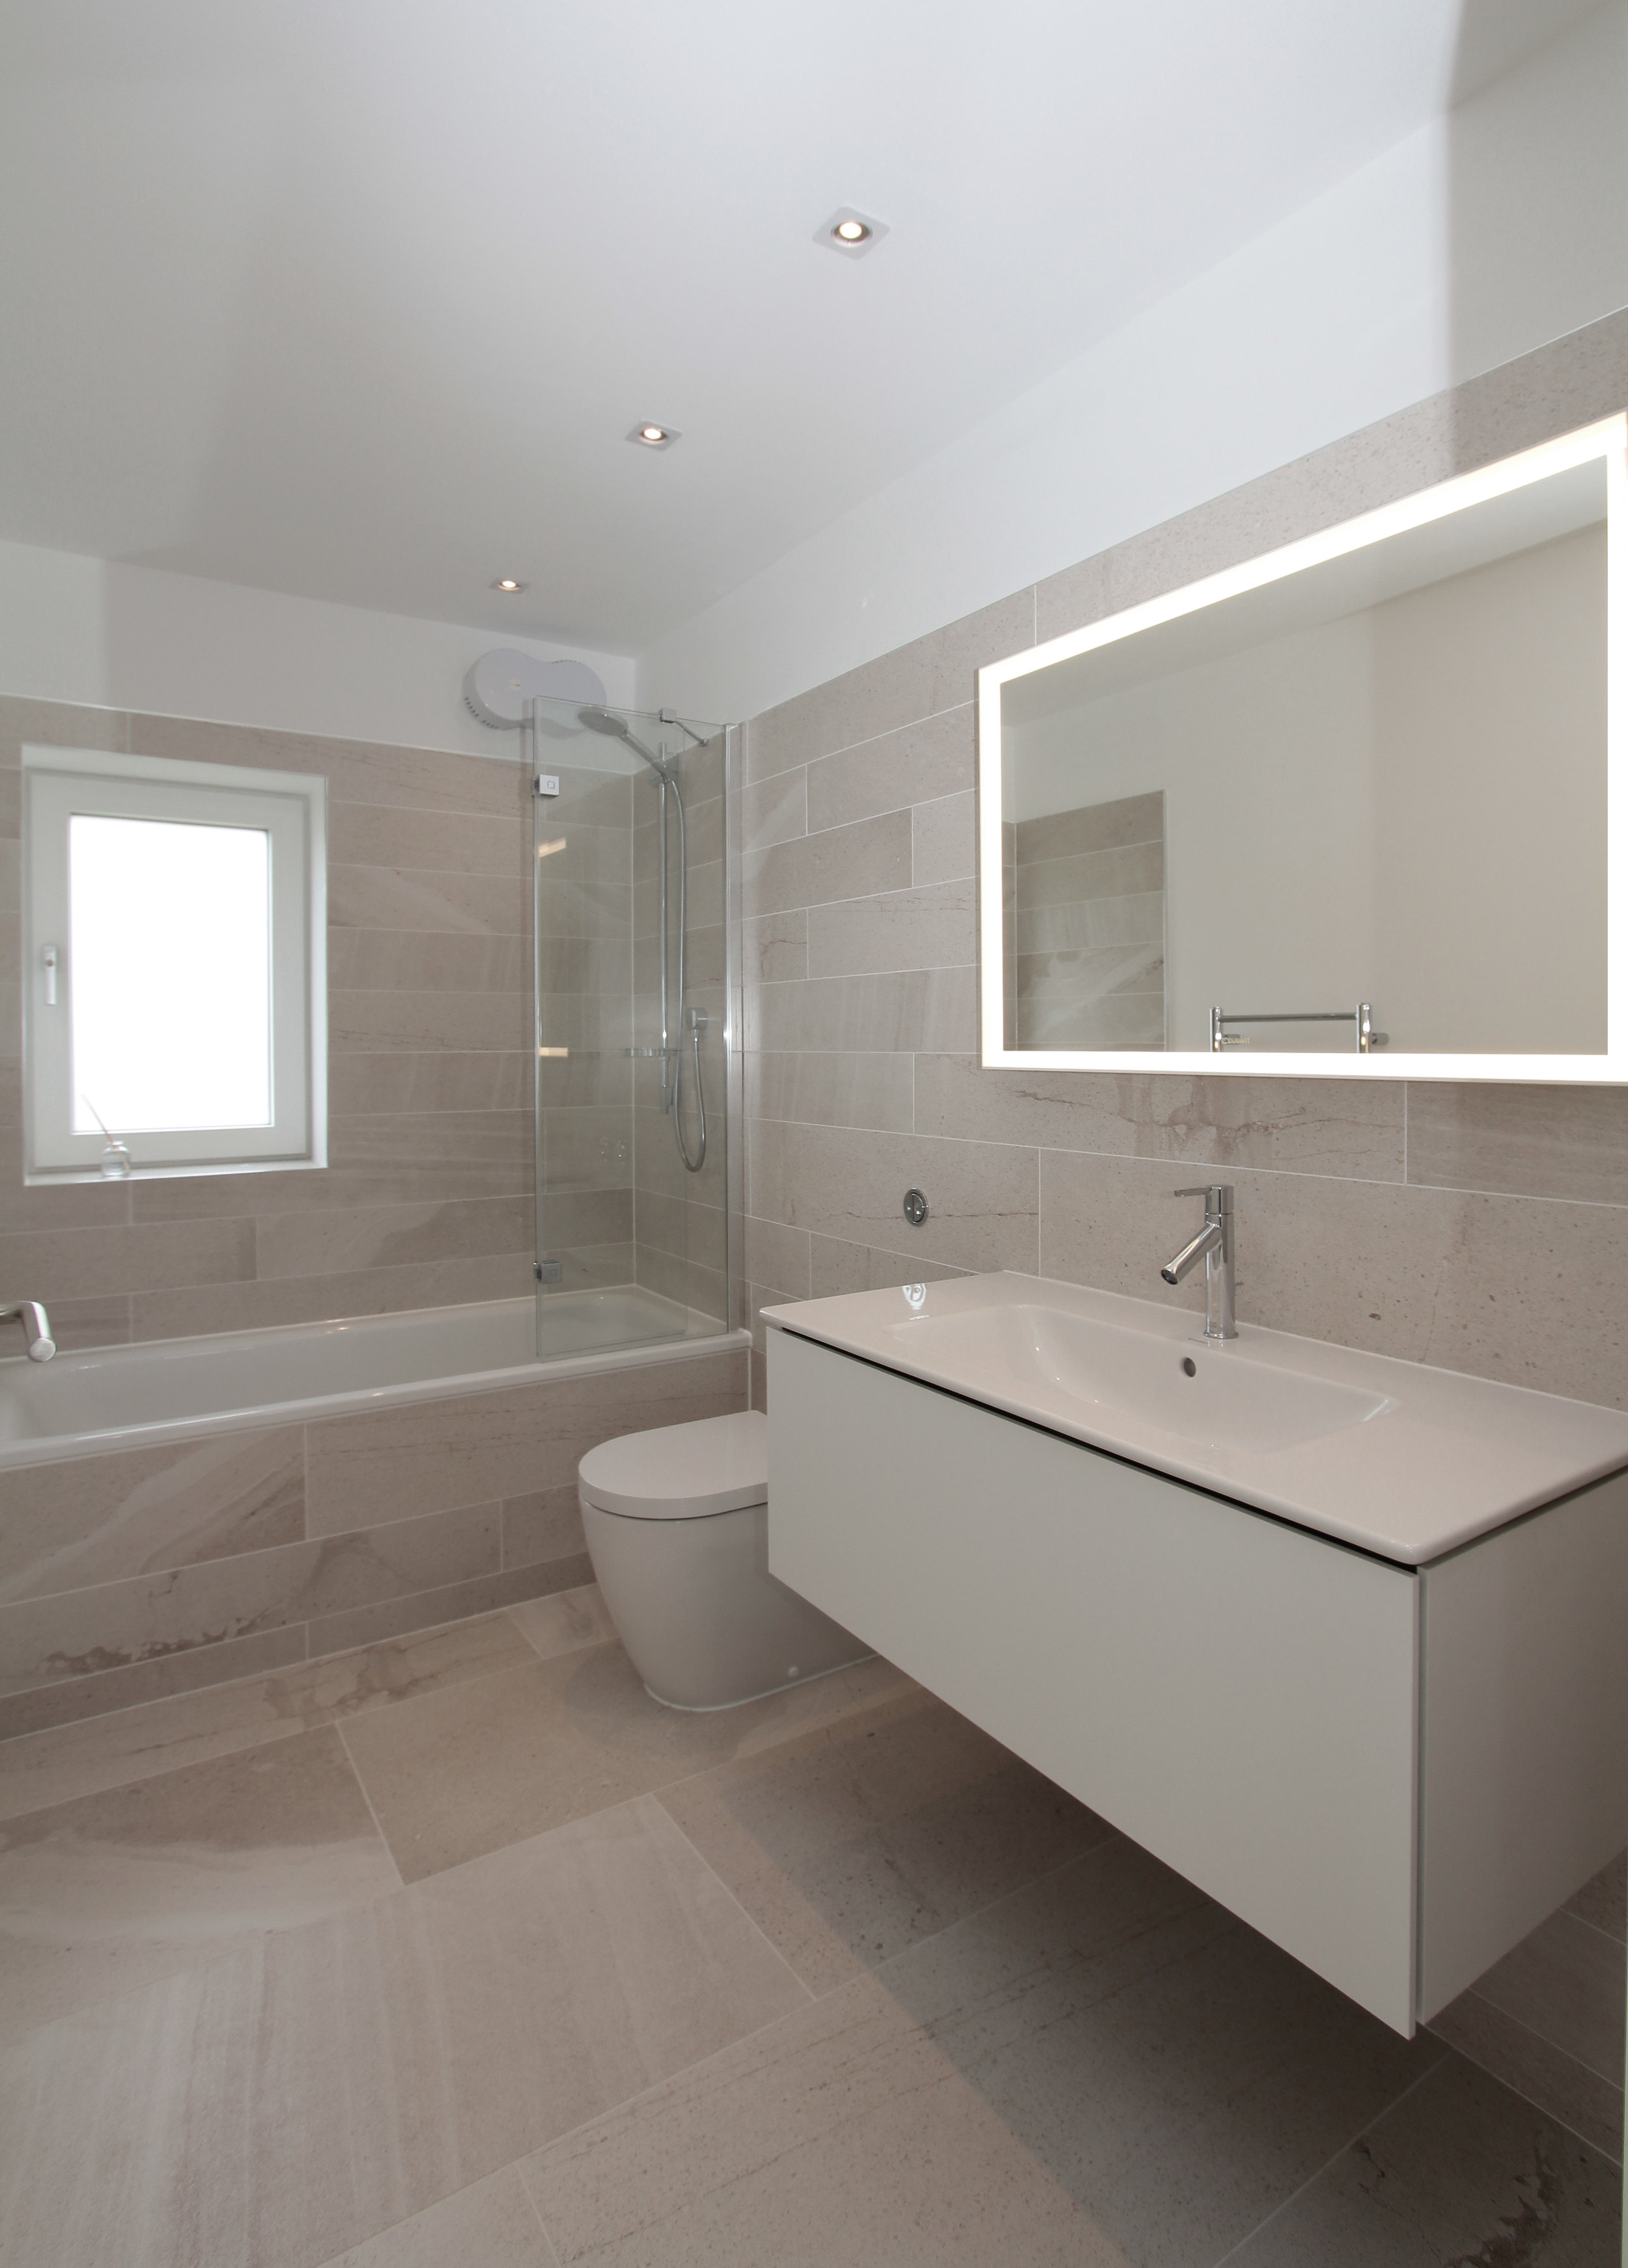 BreakPoint 'Marram' img16 - View of bathroom.jpg